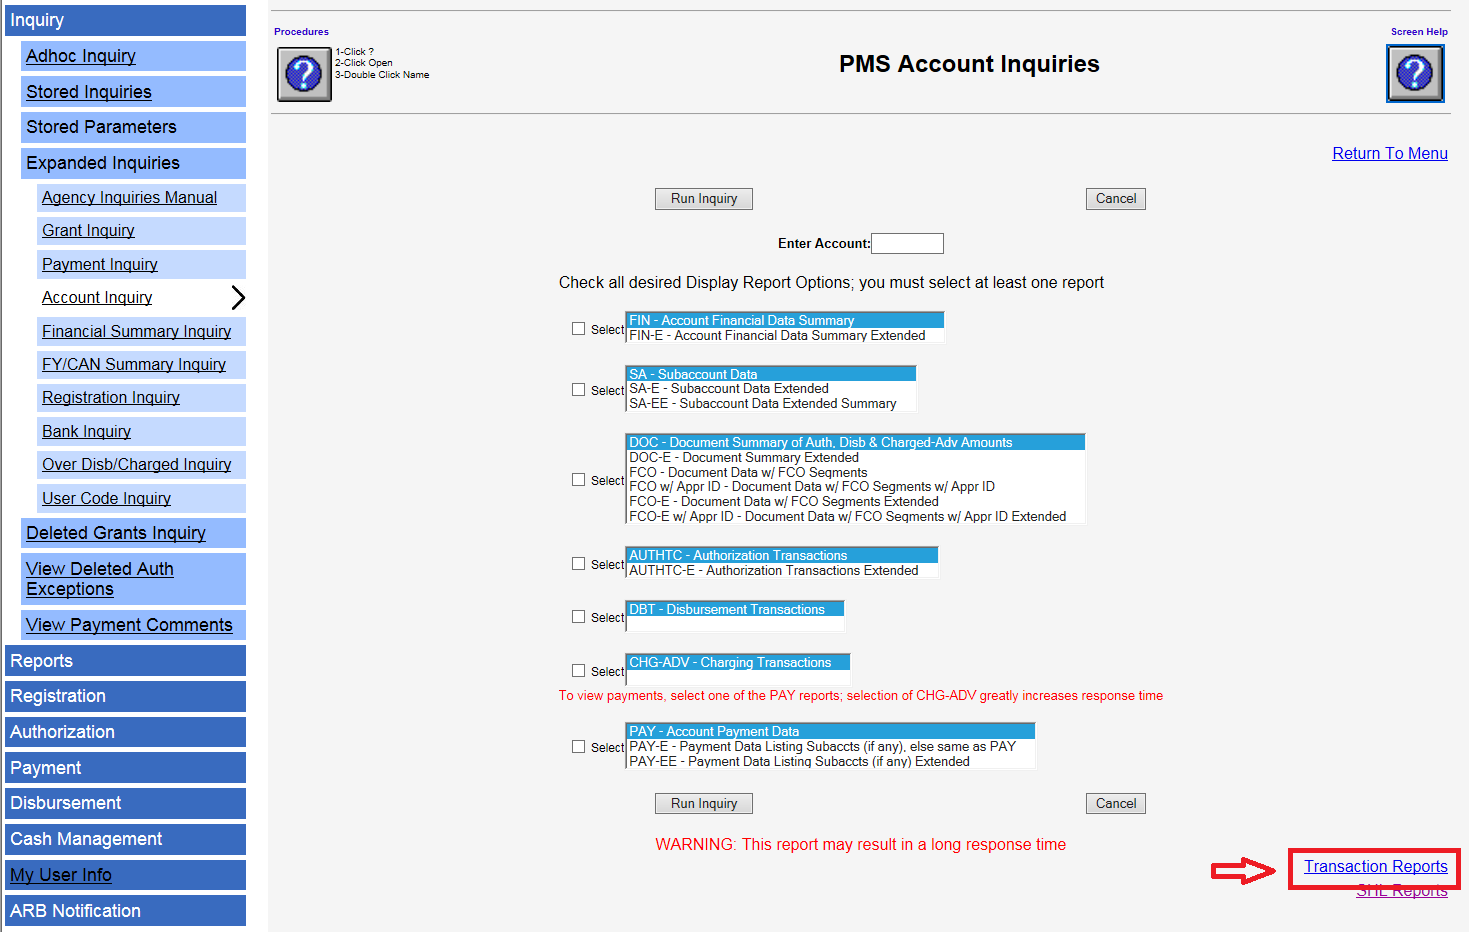 Screen shot of the PMS Account Inquiries page with the Transaction Reports link in the lower right corner highlighed with a red box.